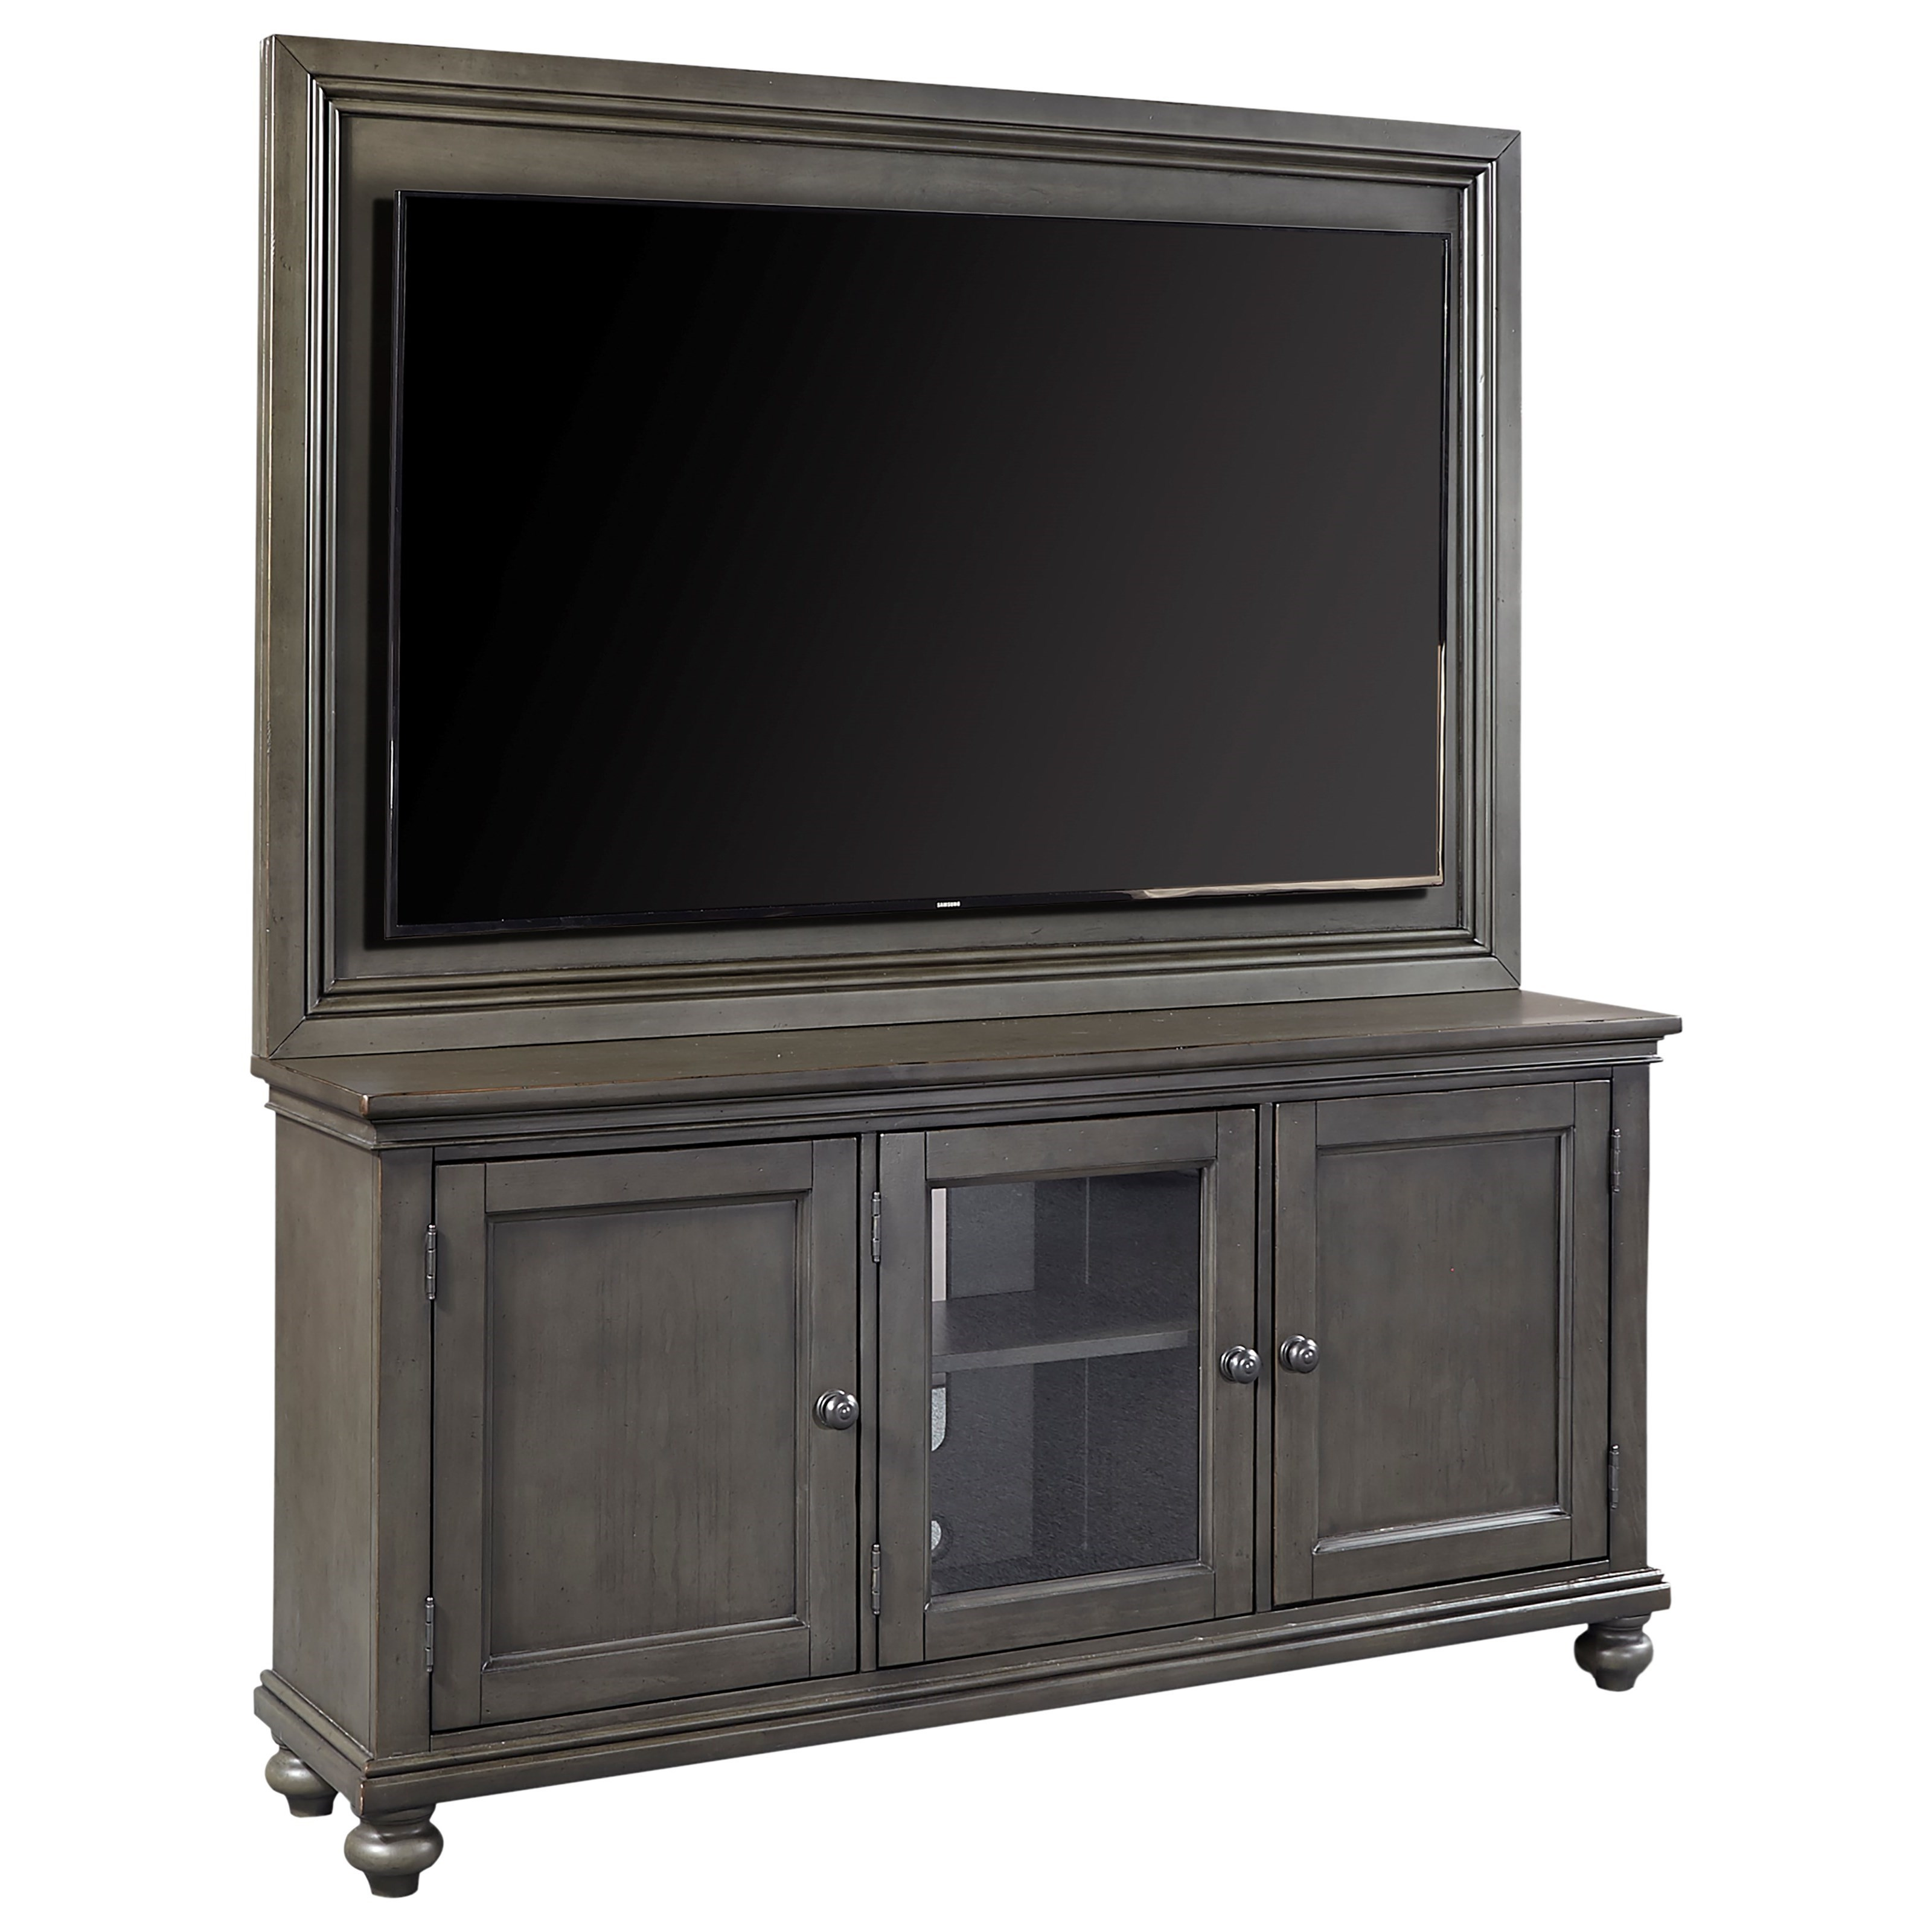 """Oxford 65"""" TV Stand With Backer by Aspenhome at Baer's Furniture"""